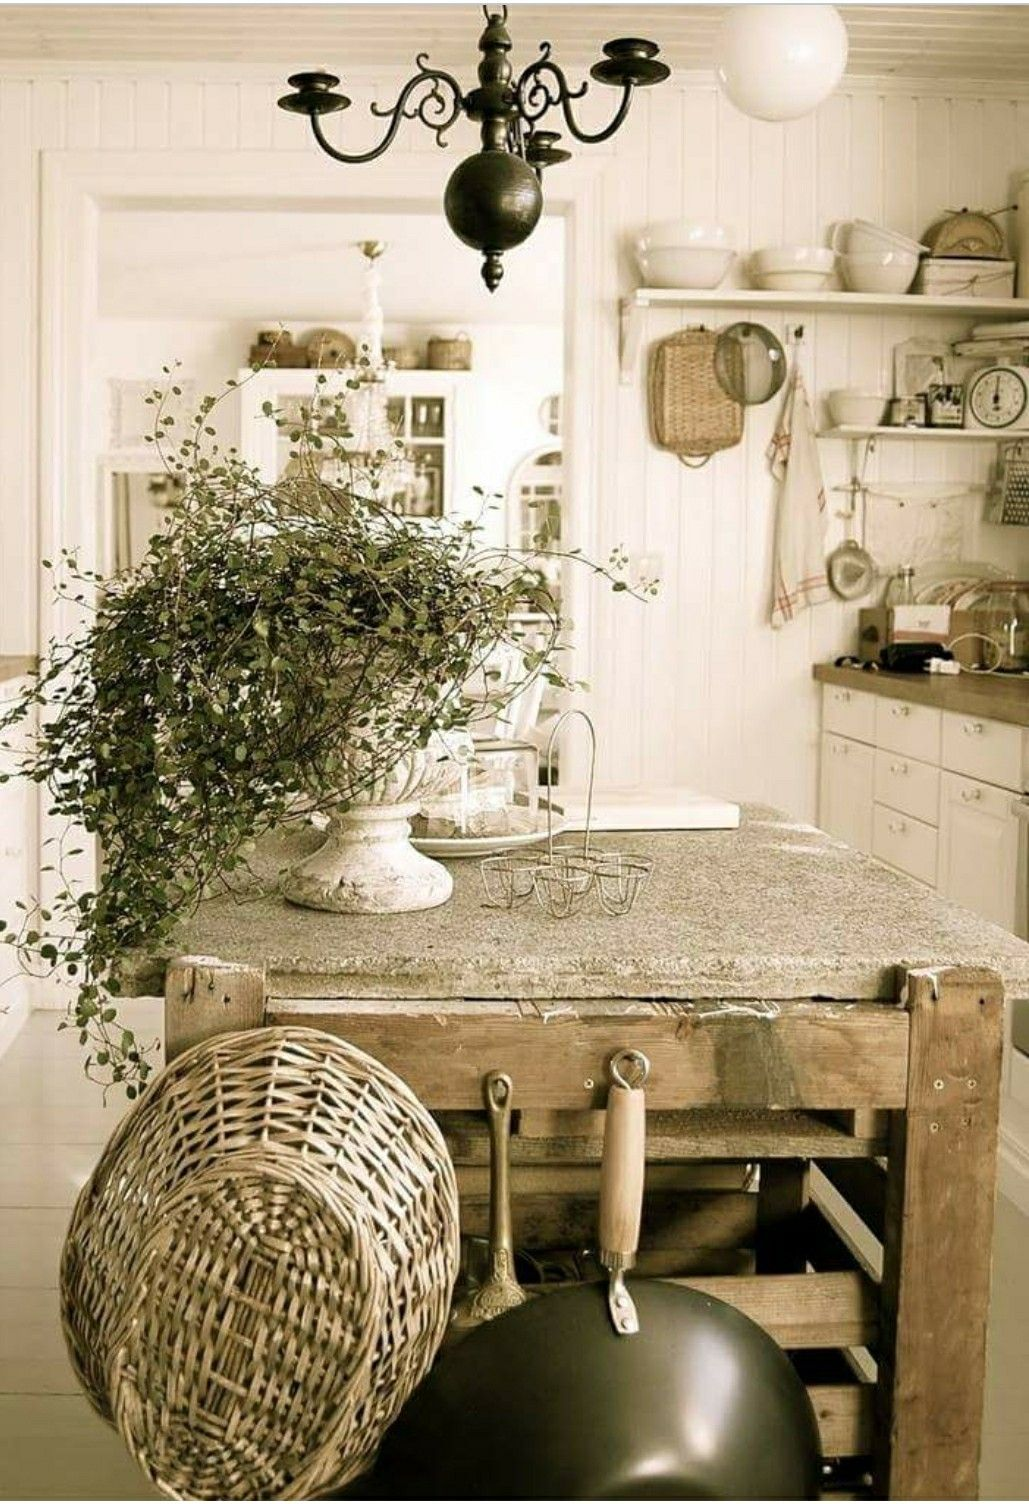 Pin von Vicky Kogel auf Decorating Ideas | Pinterest ...